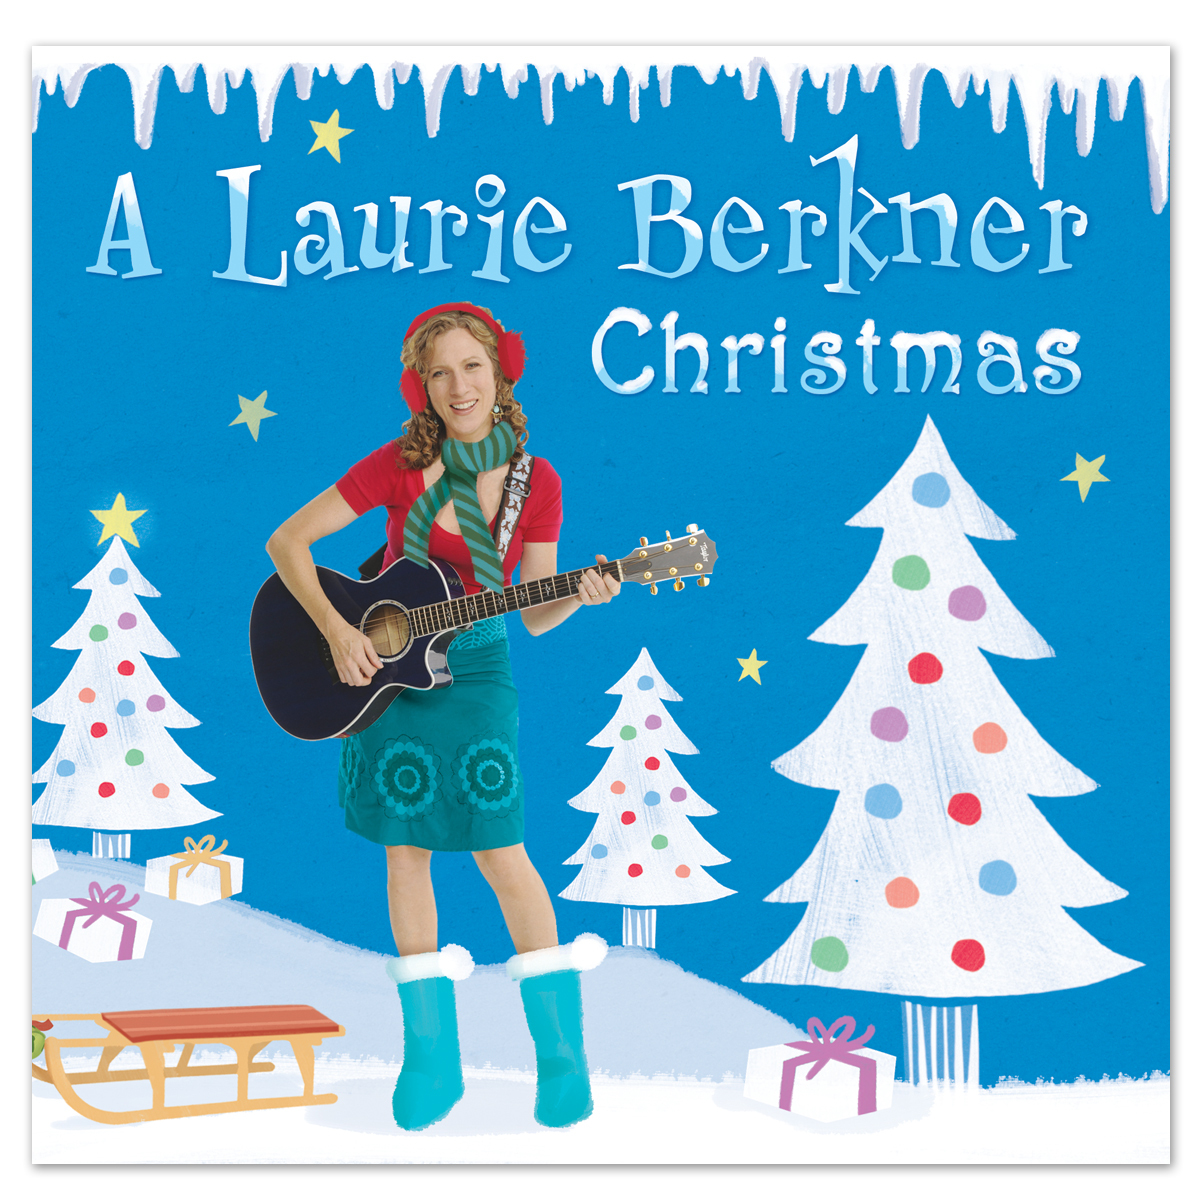 A Laurie Berkner Christmas Digital Download